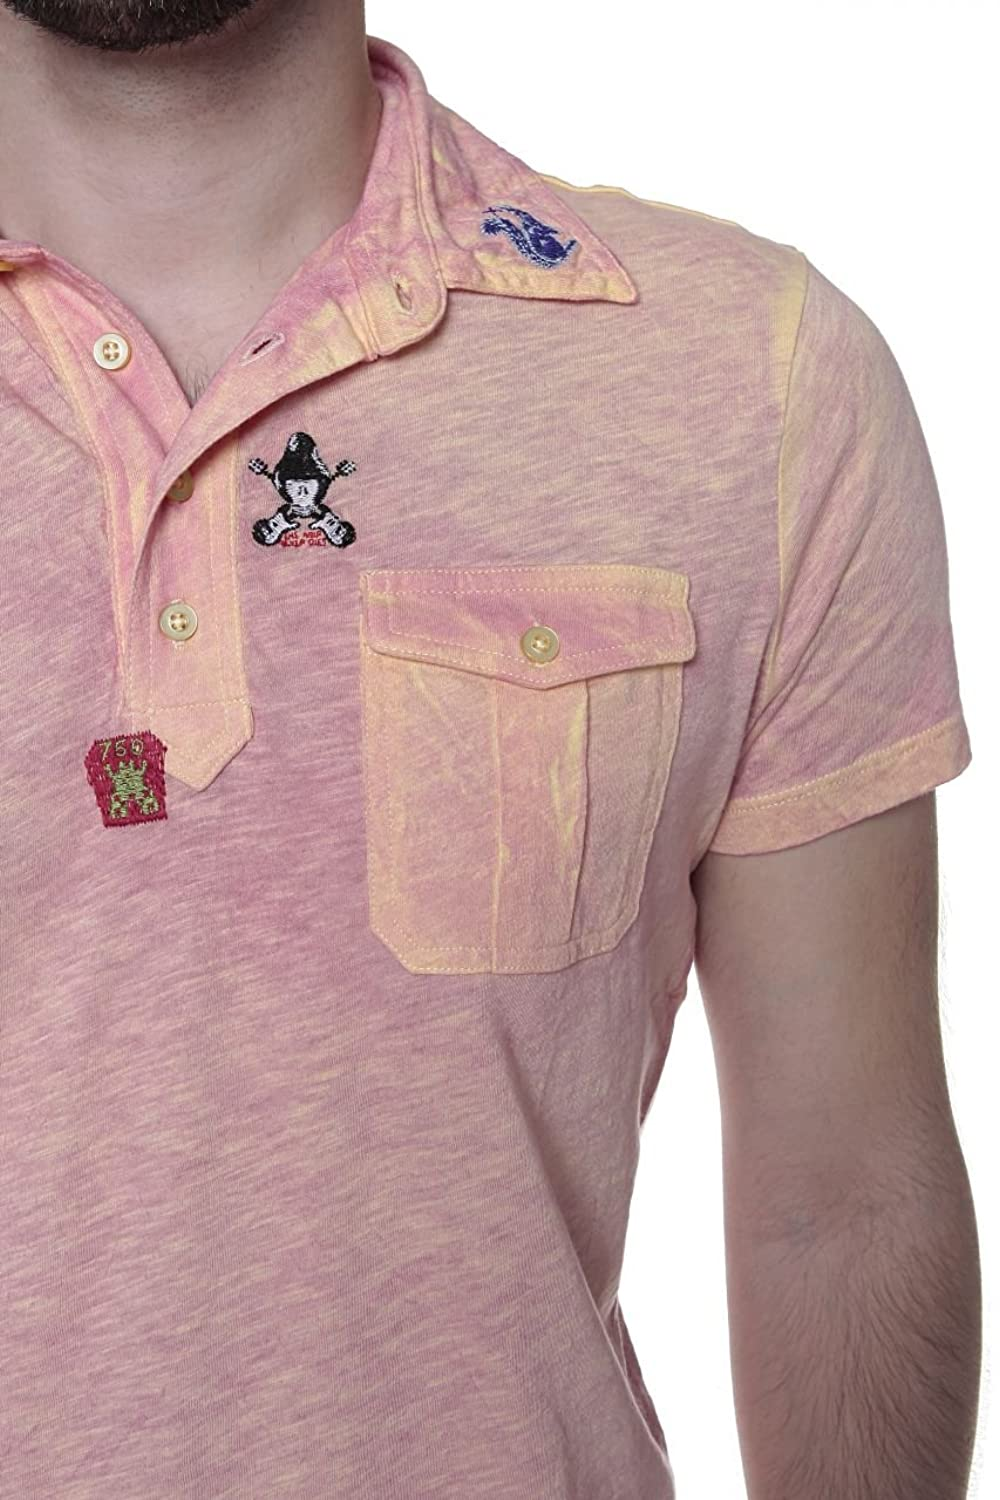 Custo Barcelona Polo Shirt Squirrel, Color Coral, Size: XS: Amazon.co.uk:  Clothing